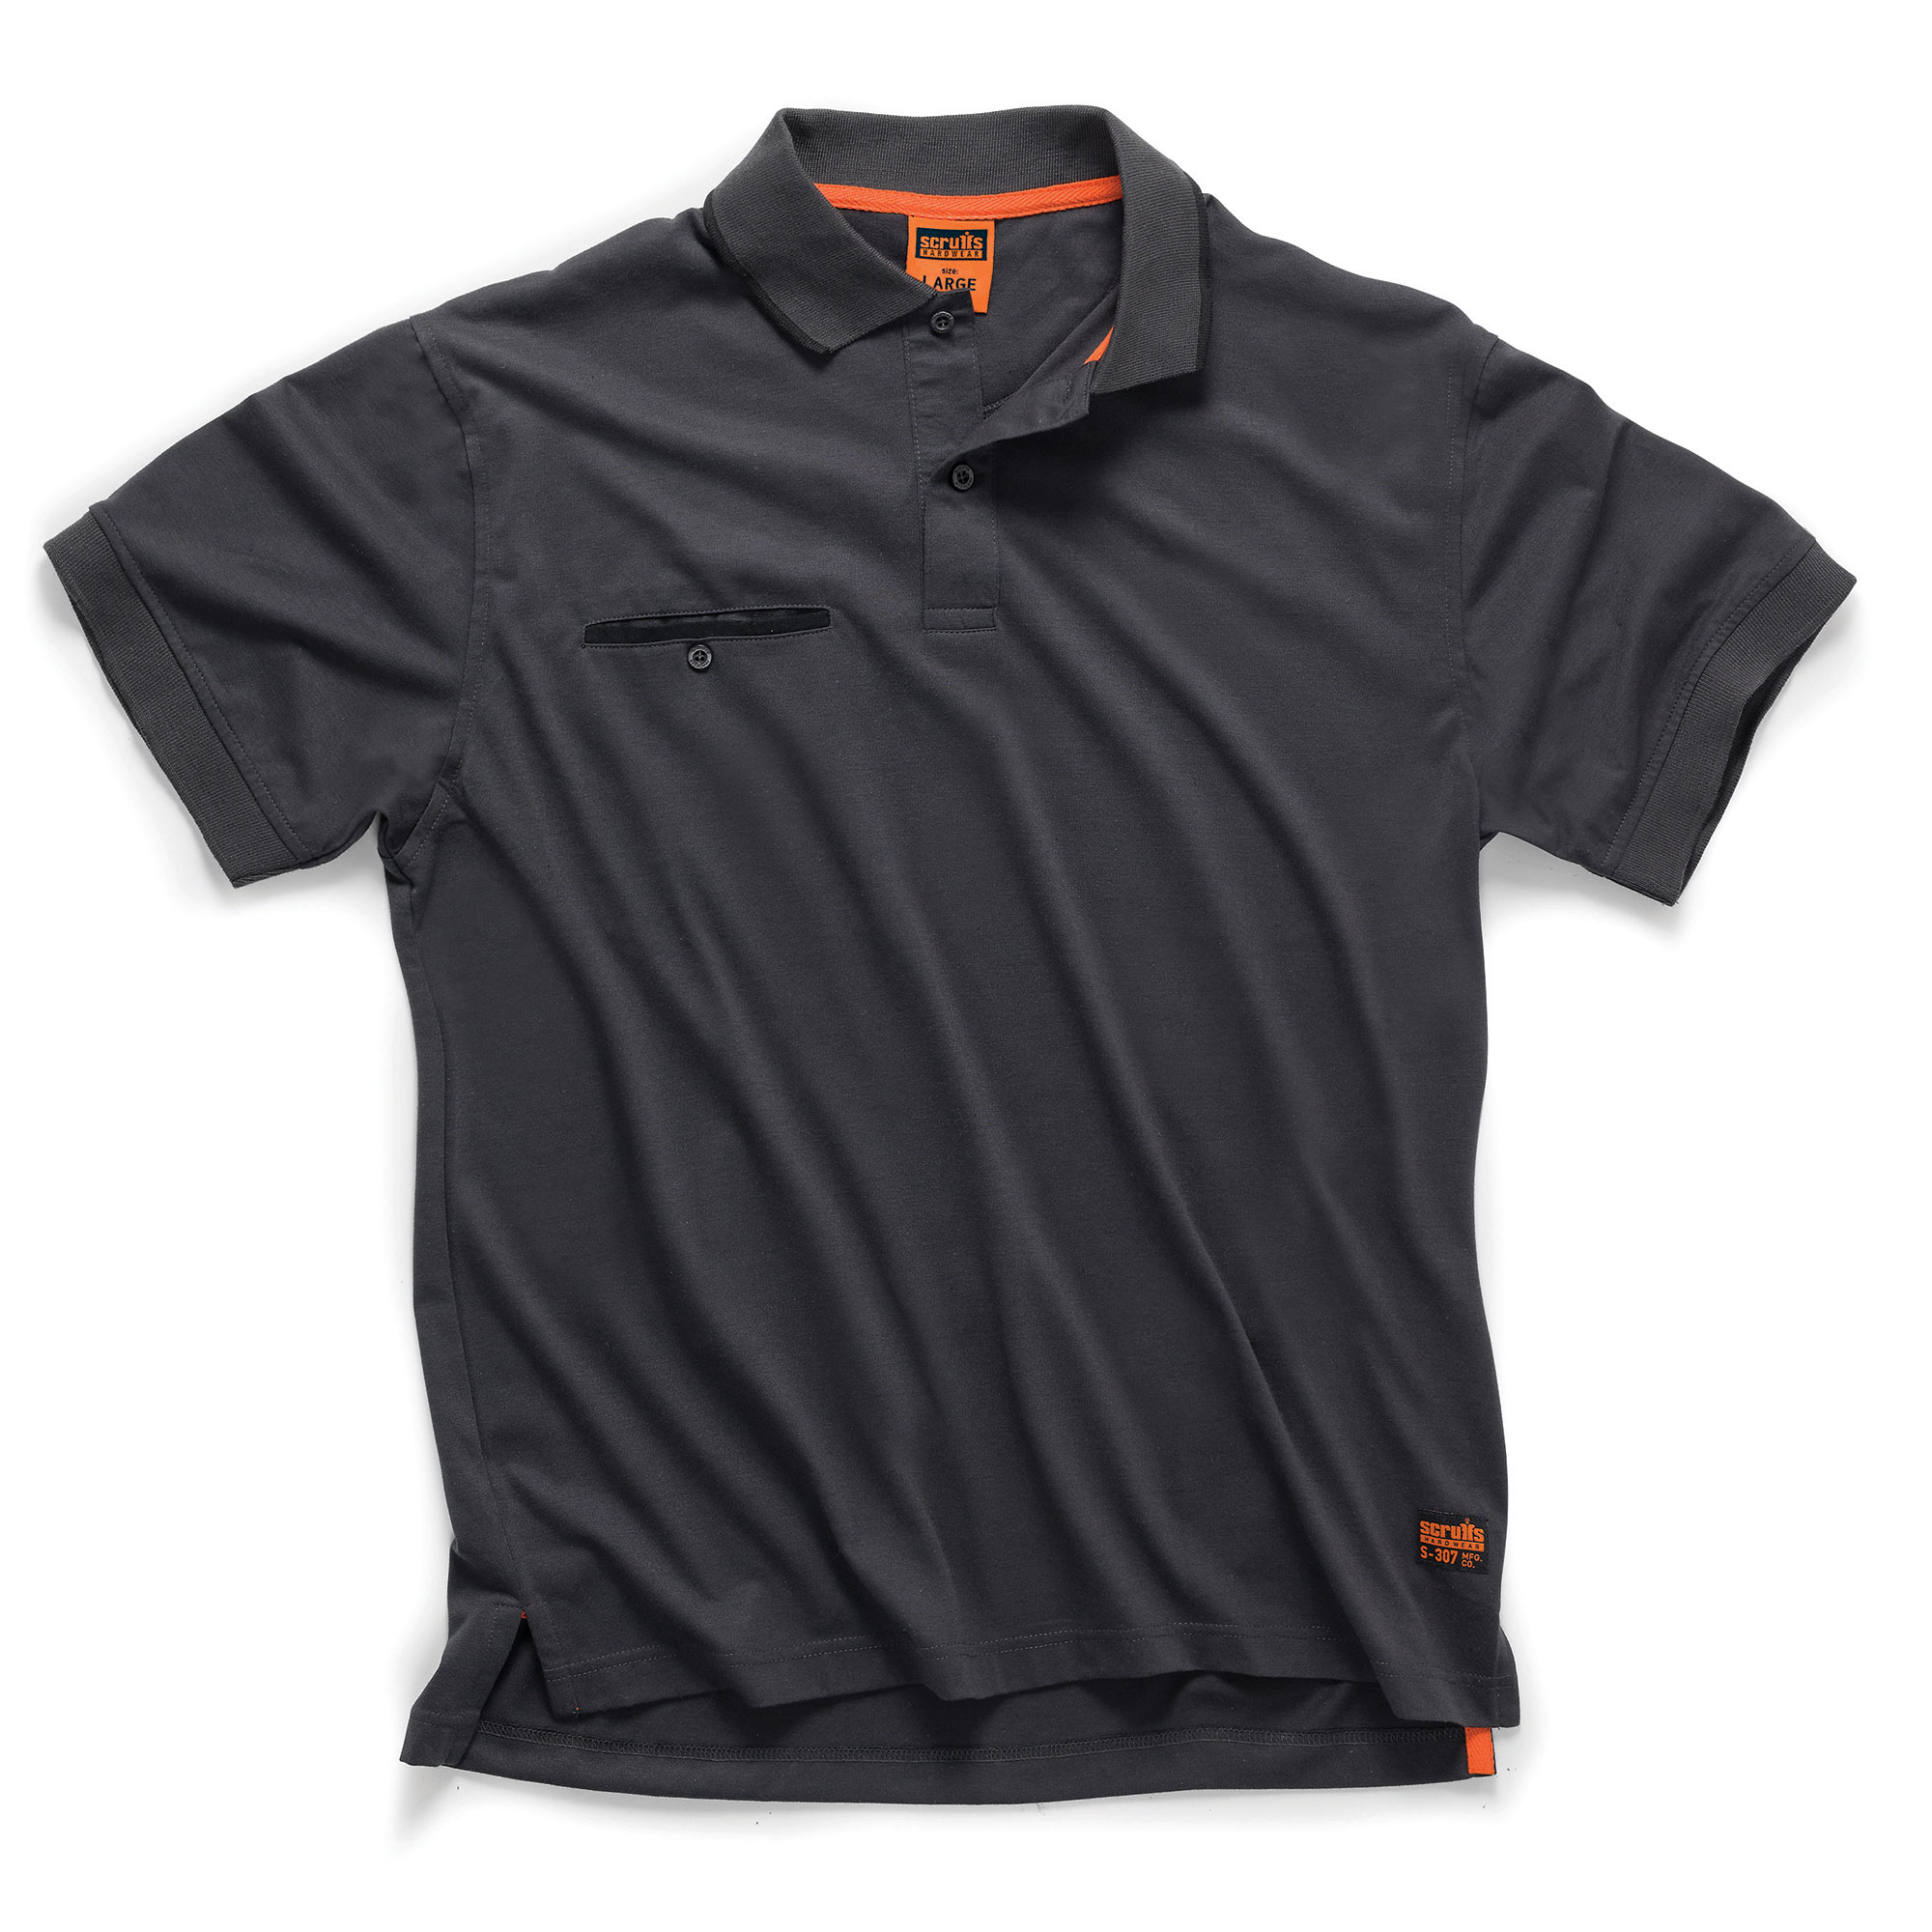 Scruffs Worker Polo Black OR Graphite Small to XX Large